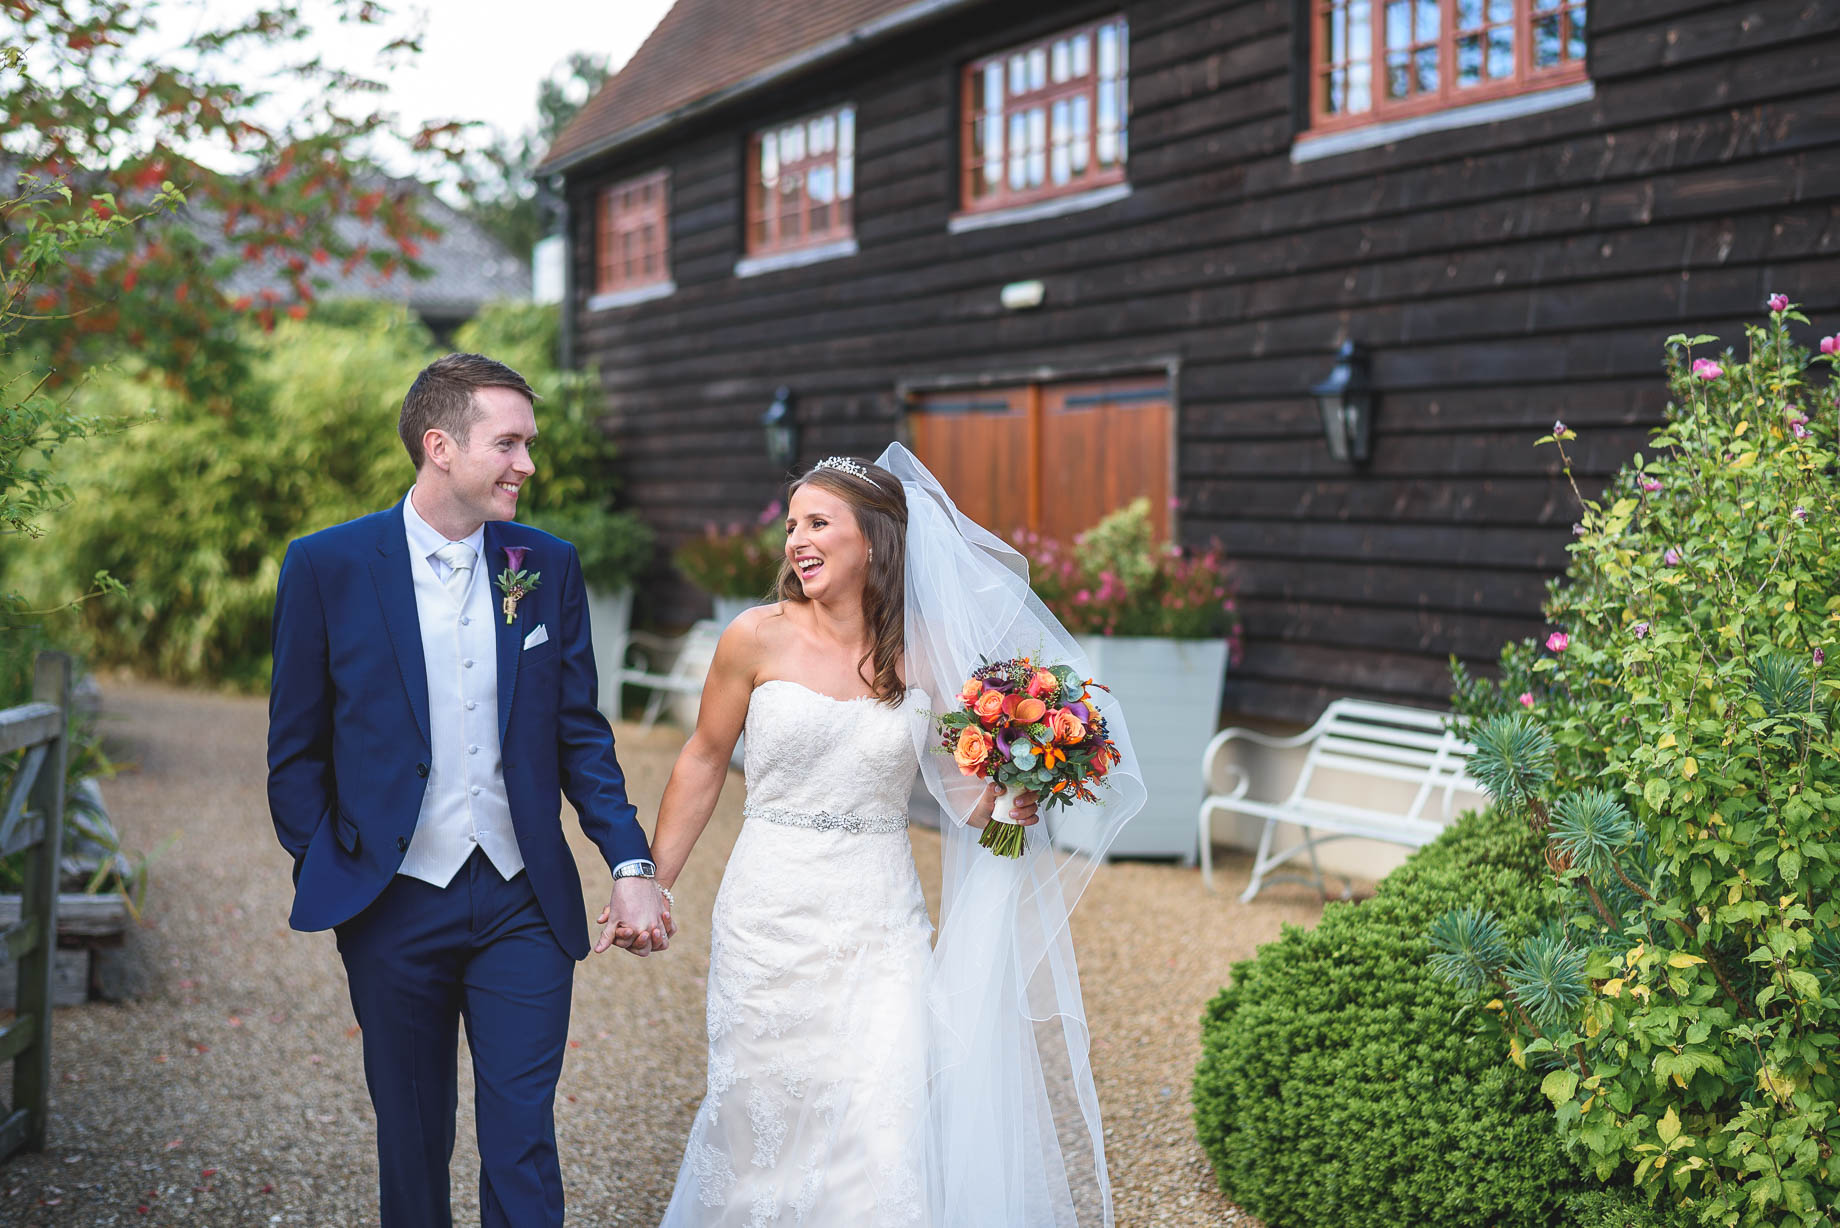 Gate Street Barn wedding photography - Guy Collier - Claire and Andy (70 of 192)